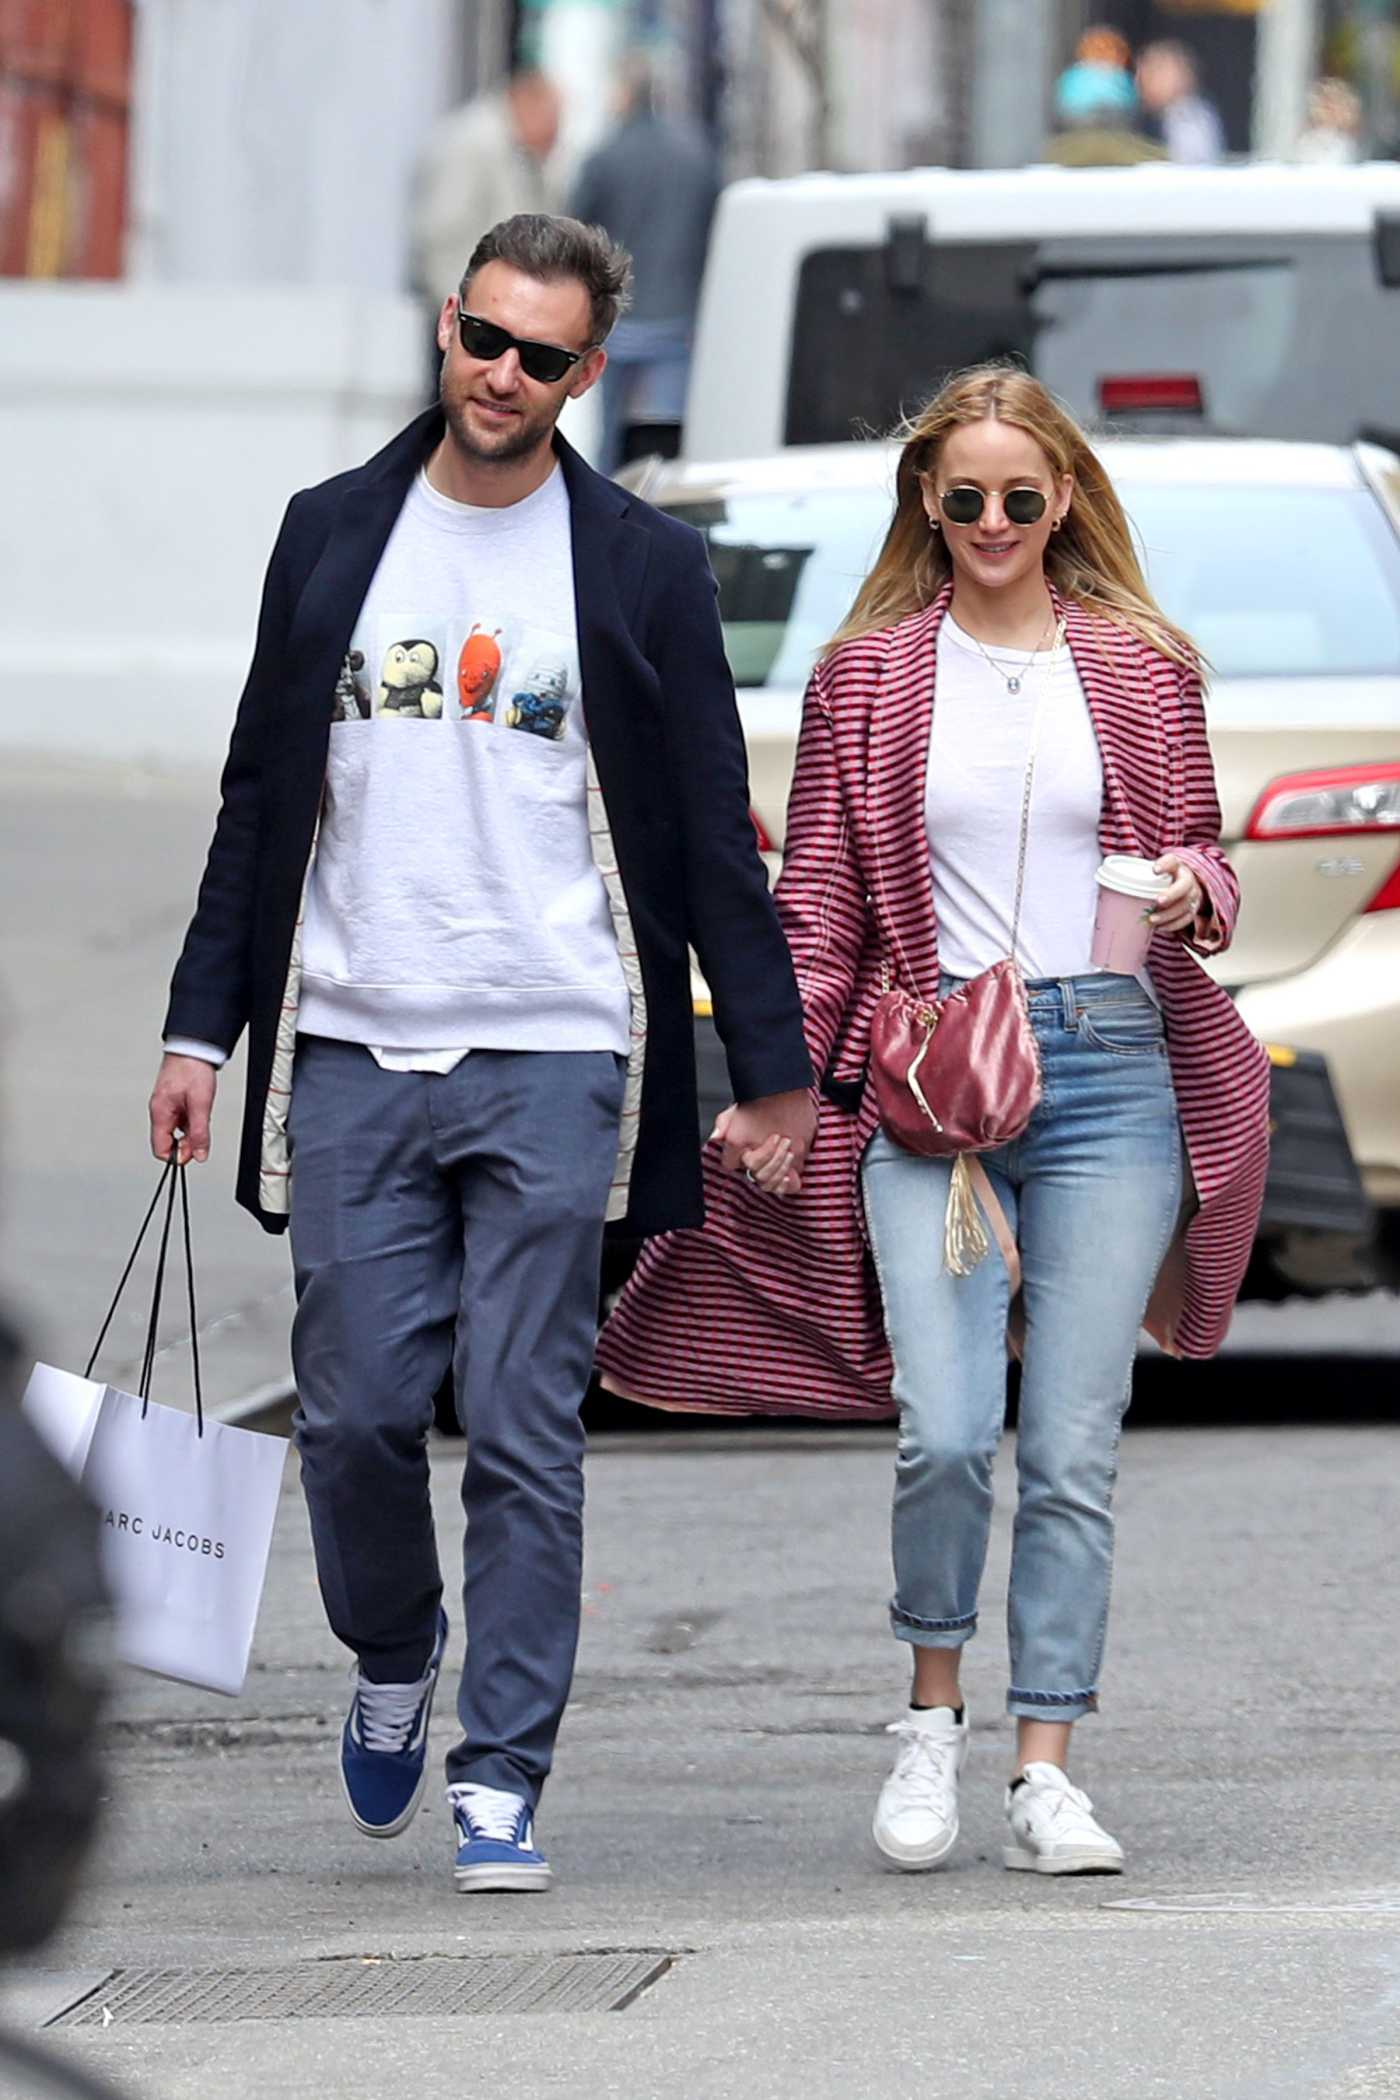 Jennifer Lawrence in a Pink Striped Cardigan Was Seen Out with Cooke Maroney in NYC 04/29/2019